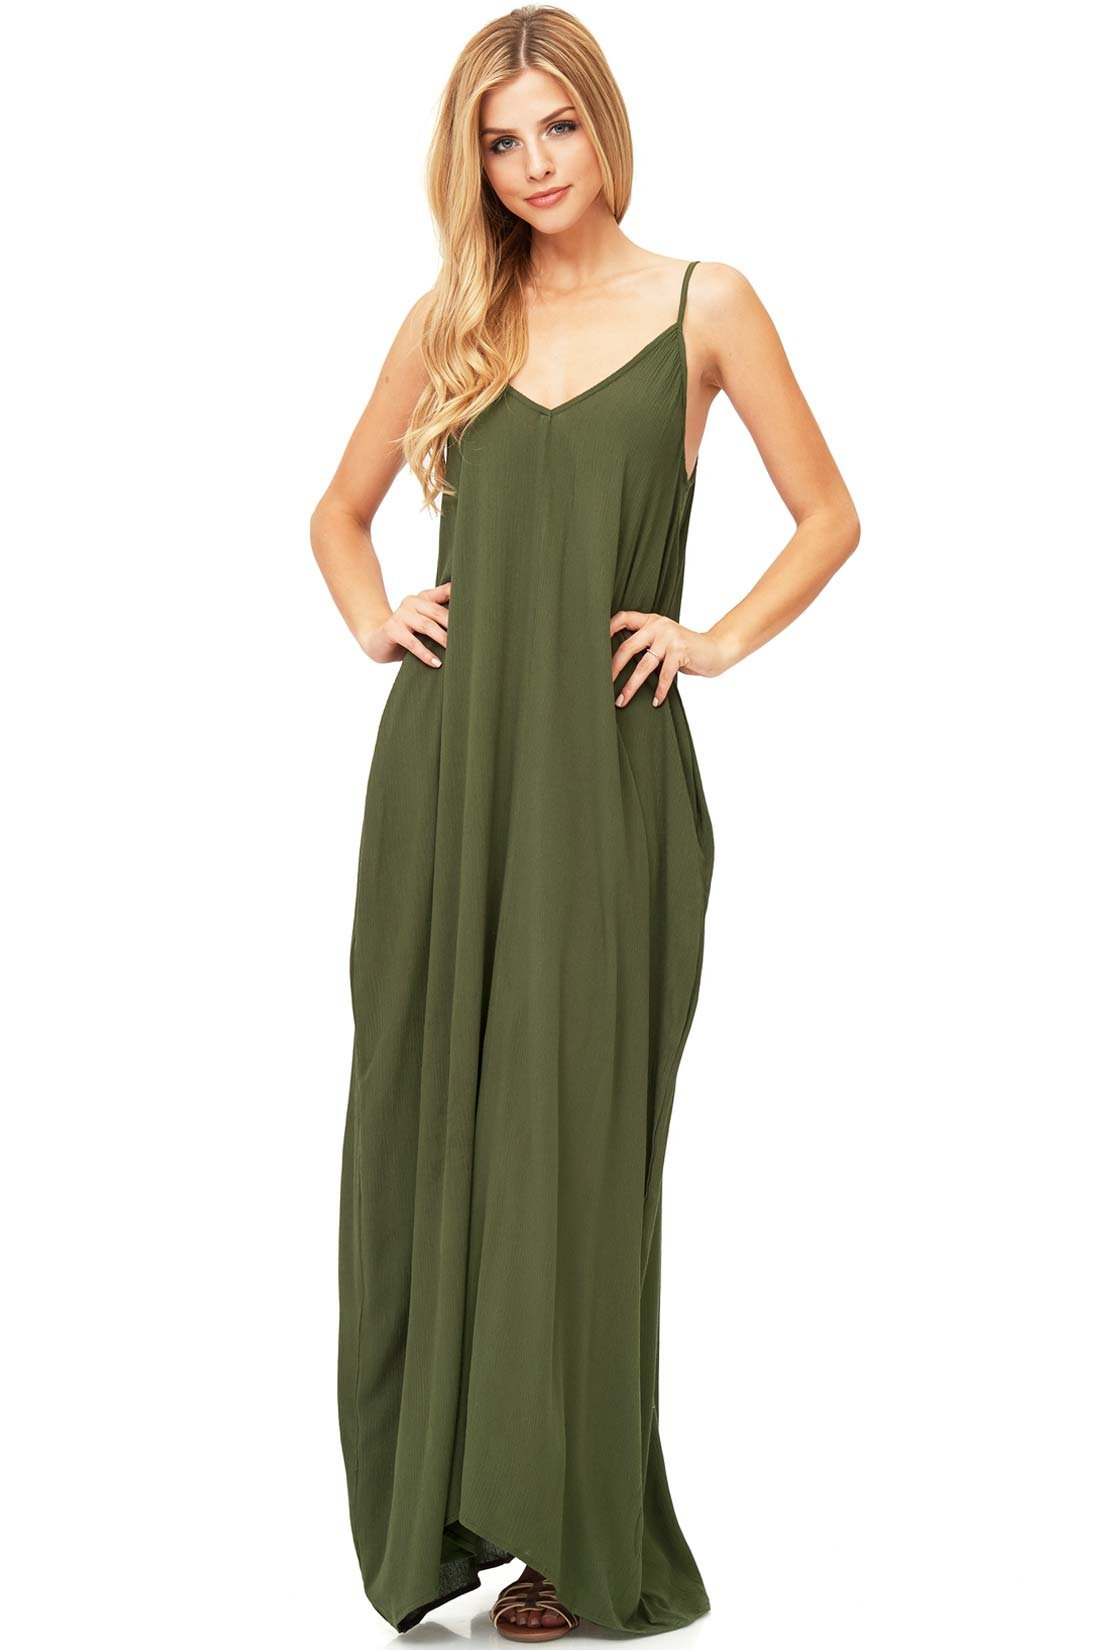 Love Stitch Women's Light Linen Simple Maxi Dress (M/L, Olive)